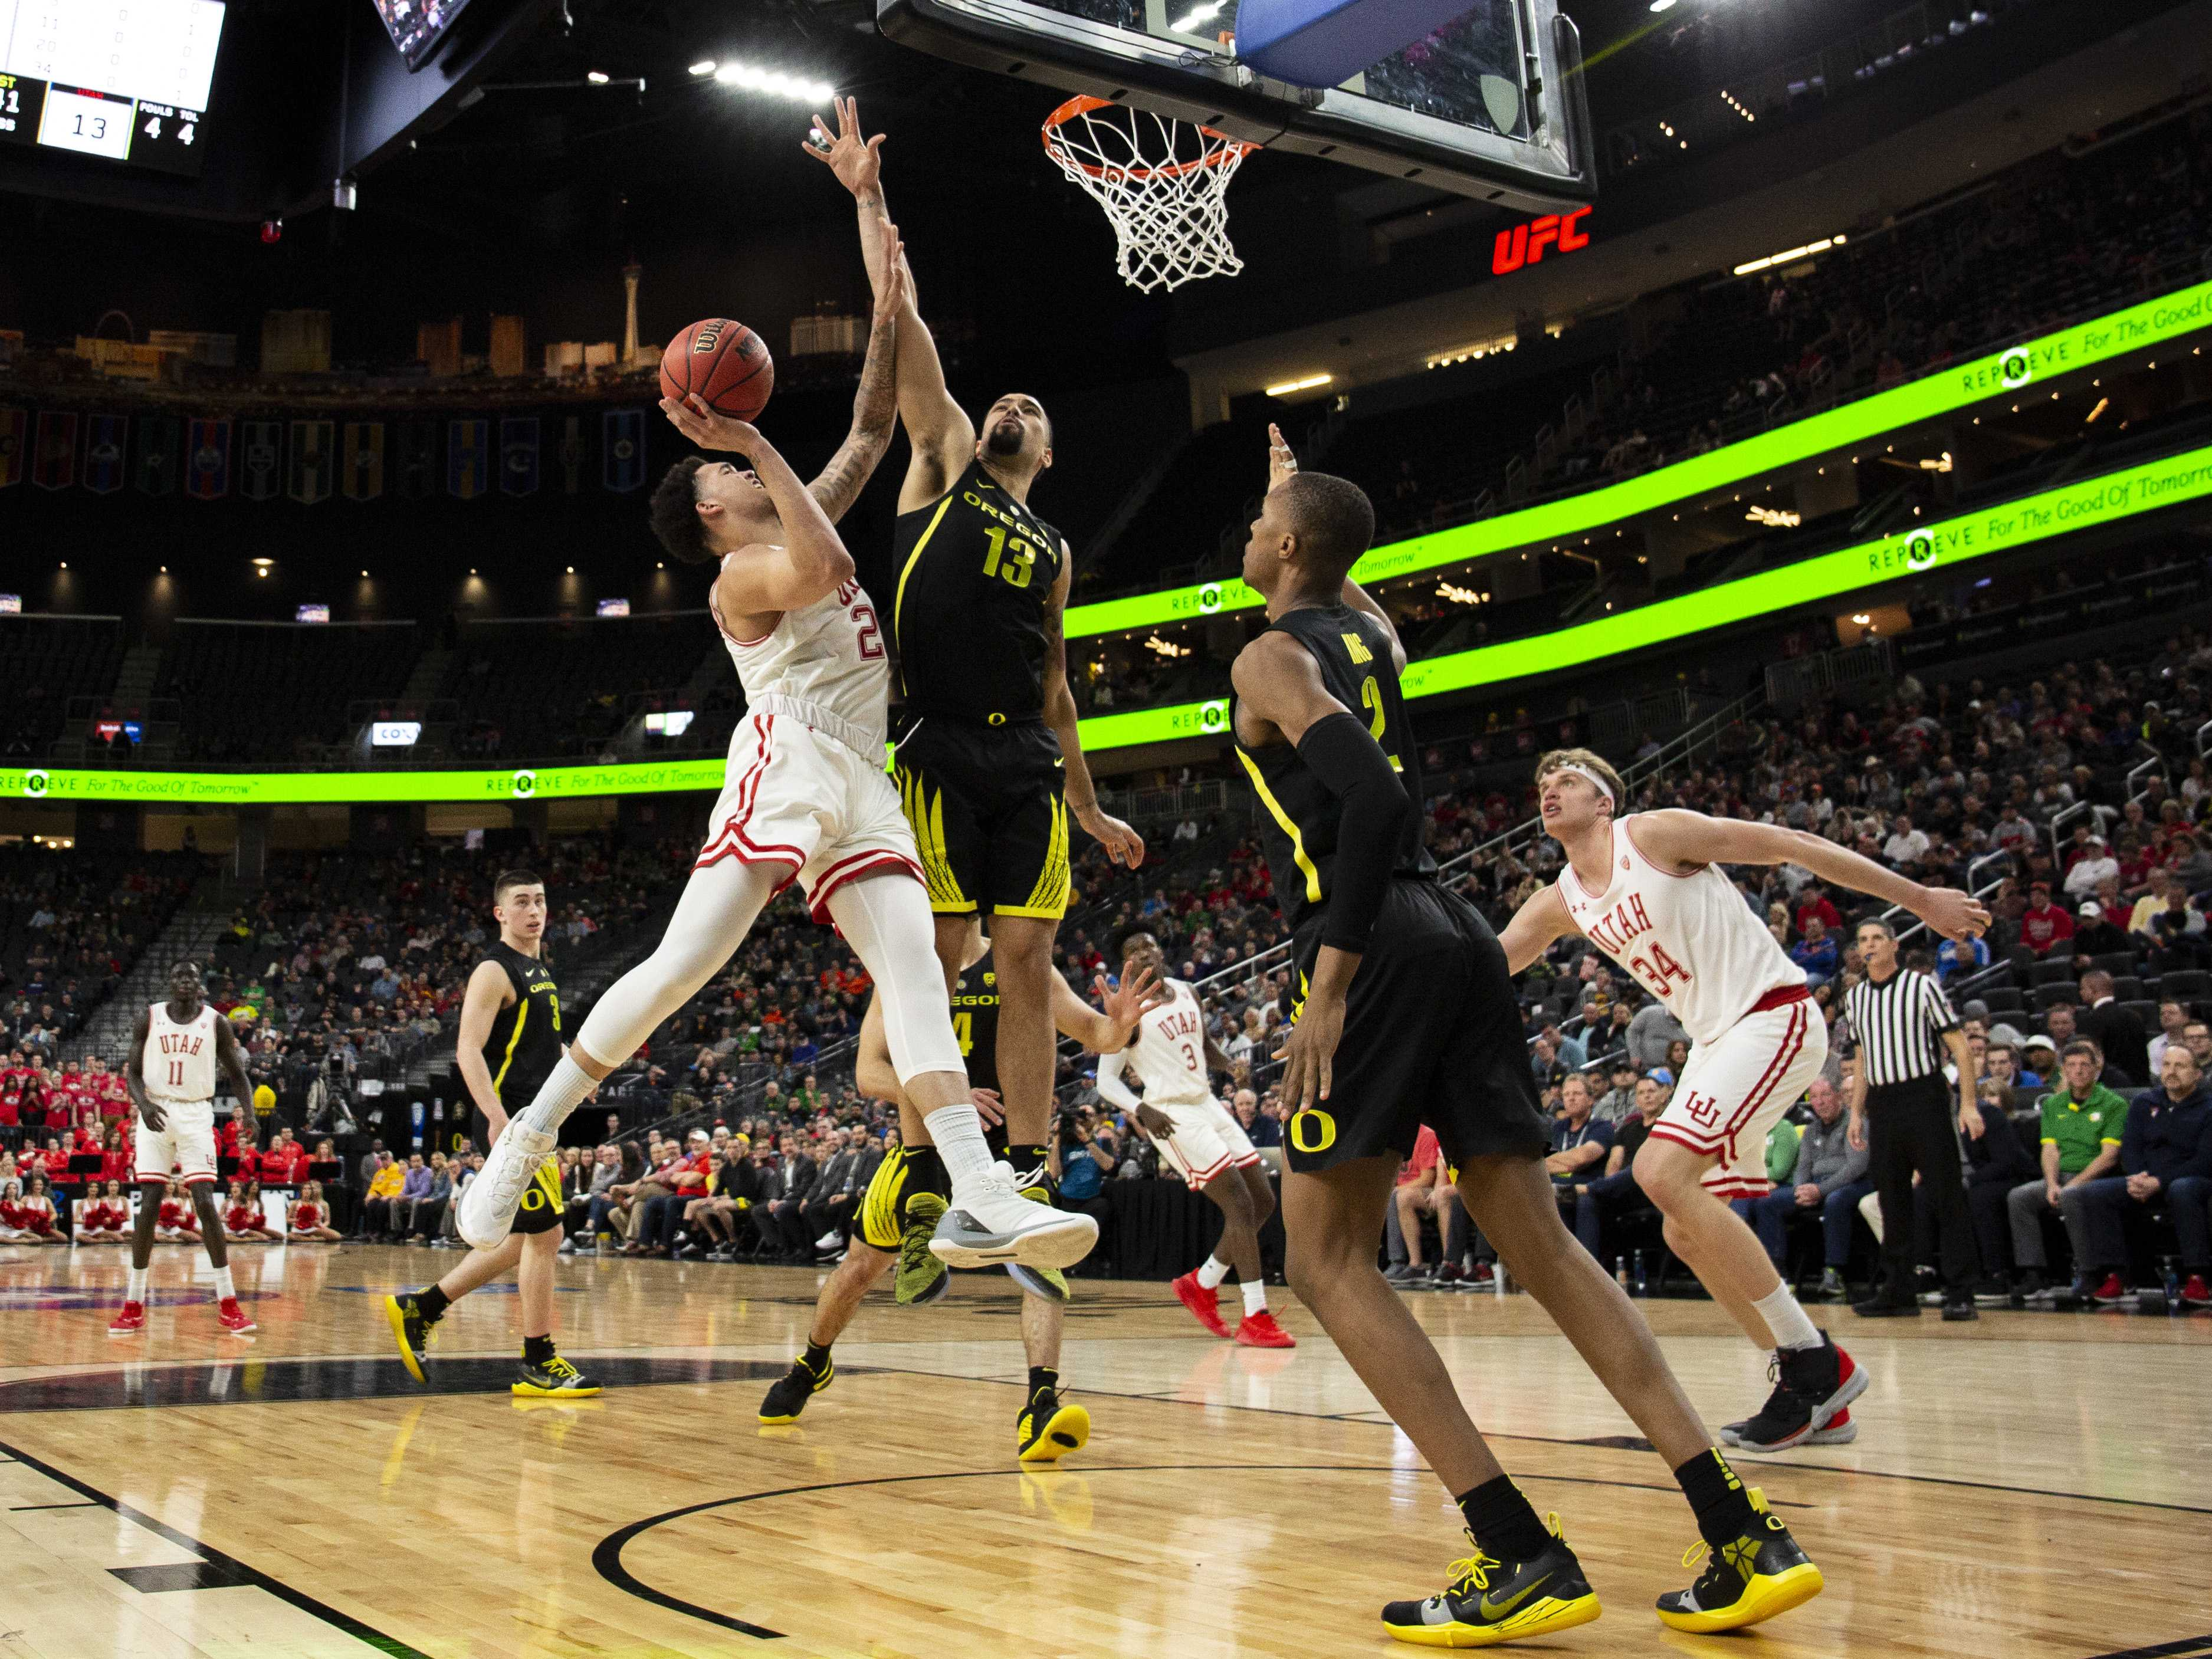 University of Utah freshman forward Timmy Allen goes for two in a quarterfinal game against the Oregon Ducks at the 2019 Pac-12 tournament.   (Photo by: Justin Prather | The Daily Utah Chronicle).